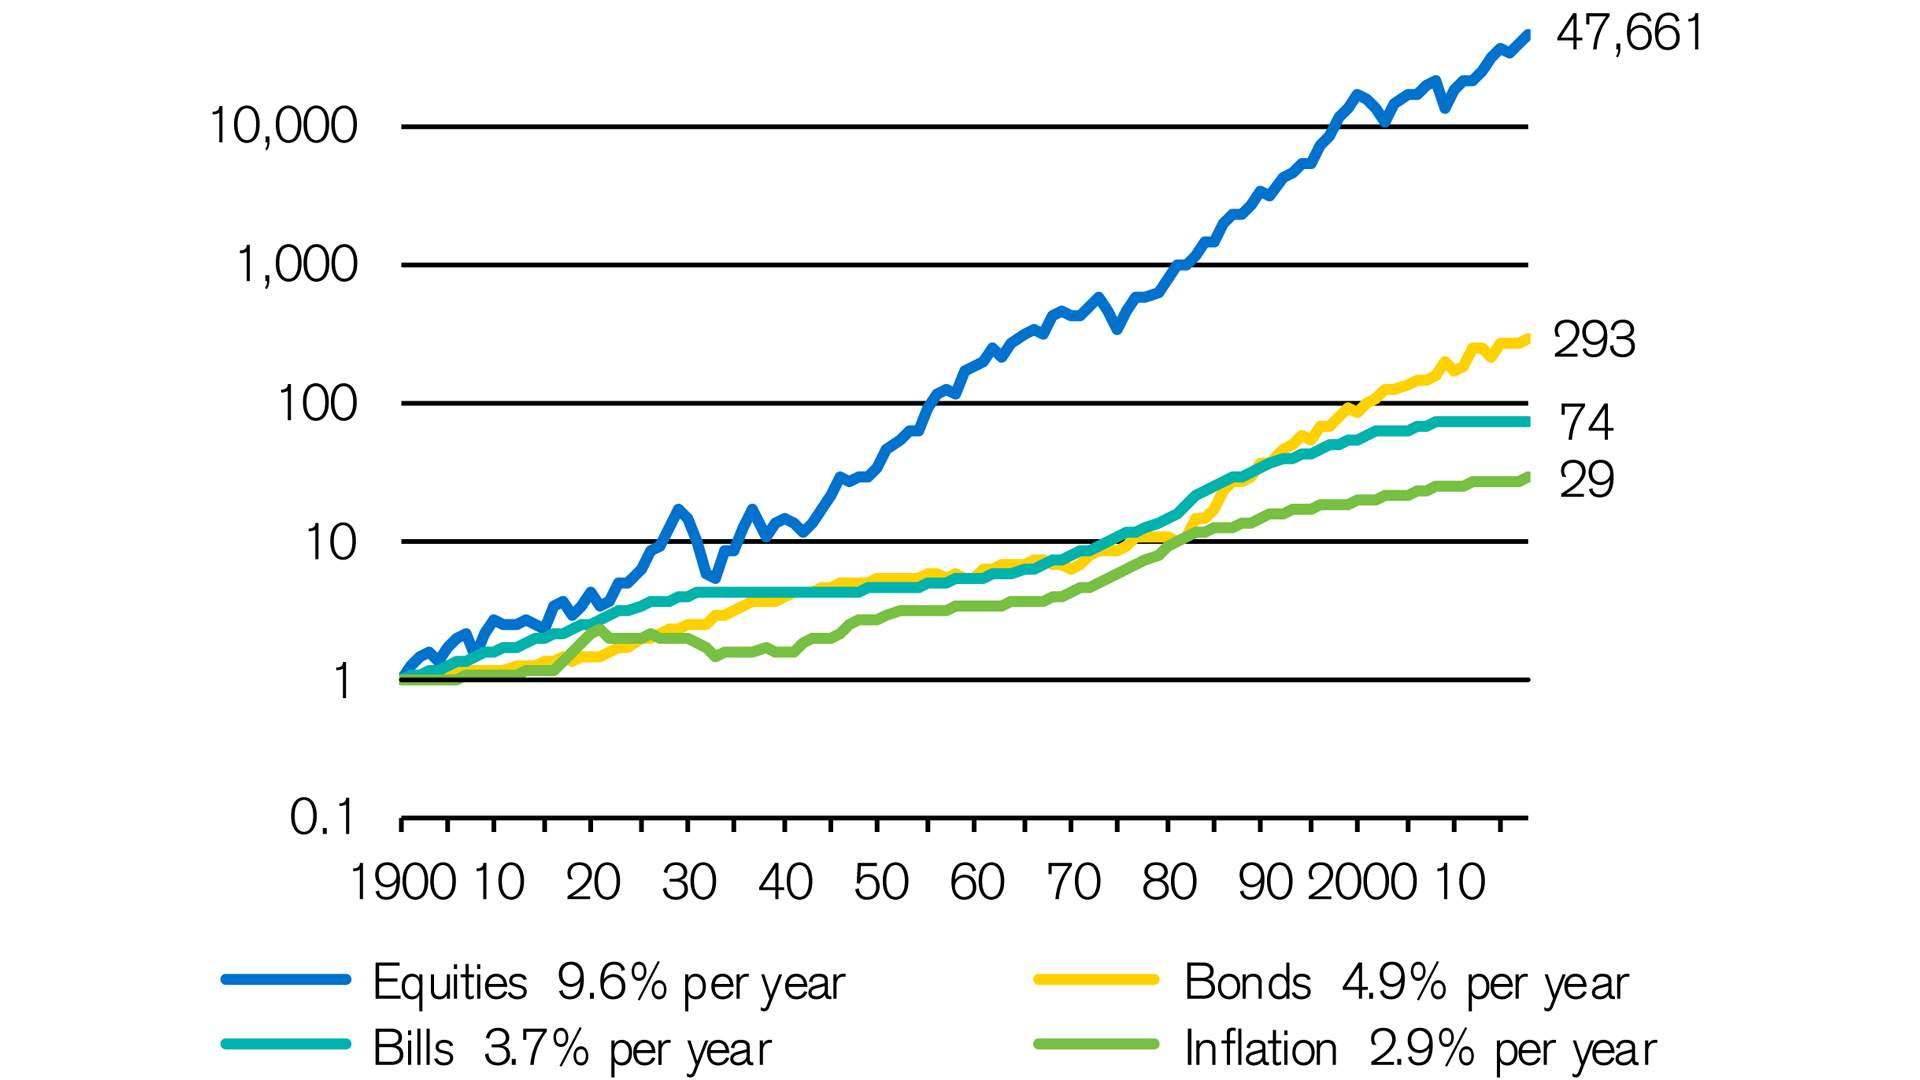 Despite-volatility-equities-beat-bonds-in-the-long-term